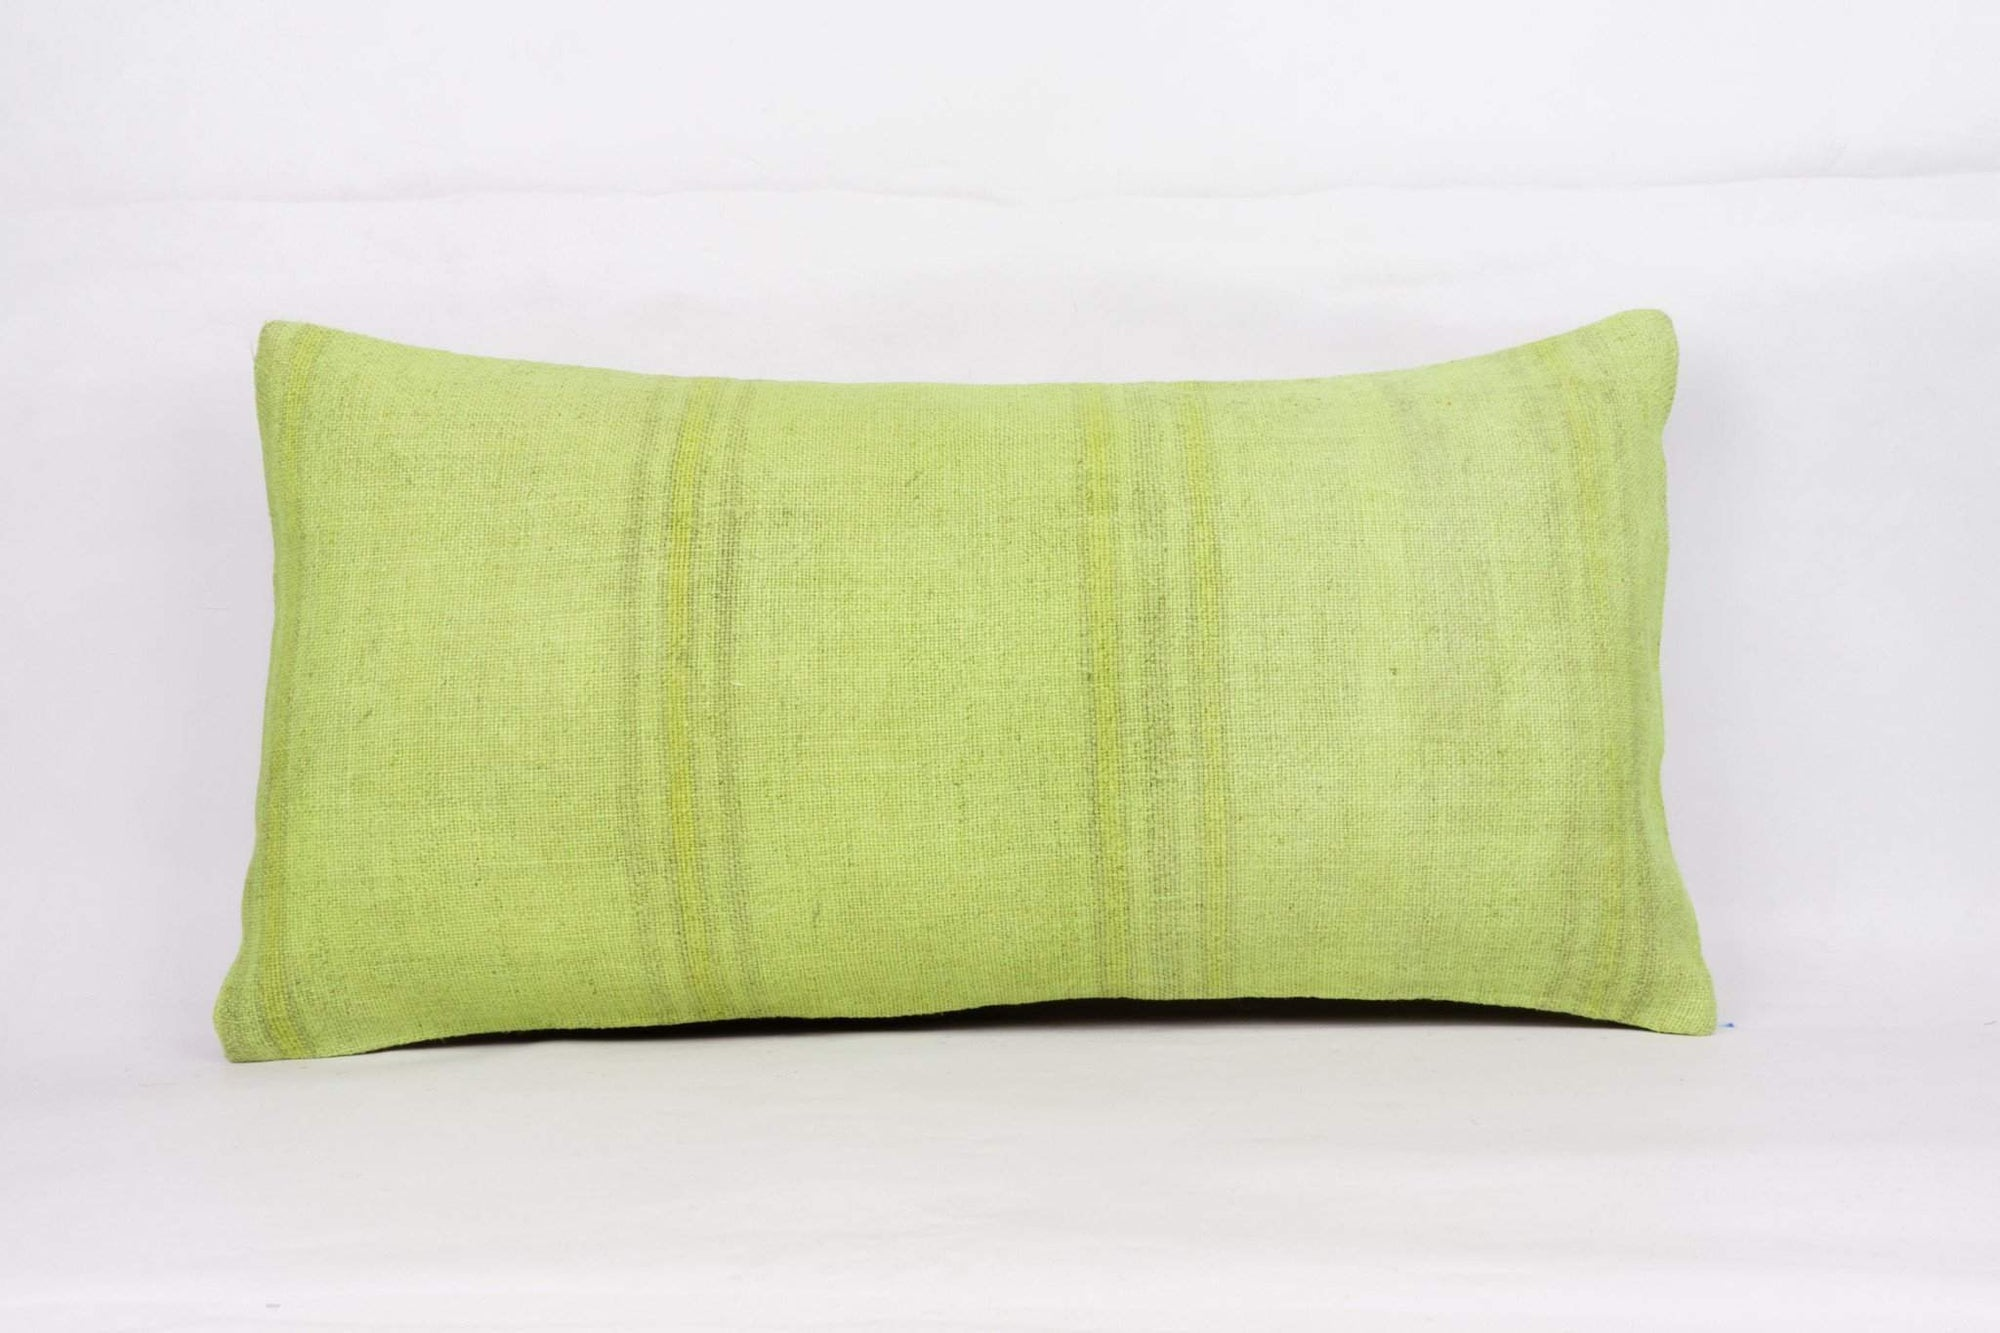 Plain_Green_Kilim Pillow Cover_12x24_A0004_4119